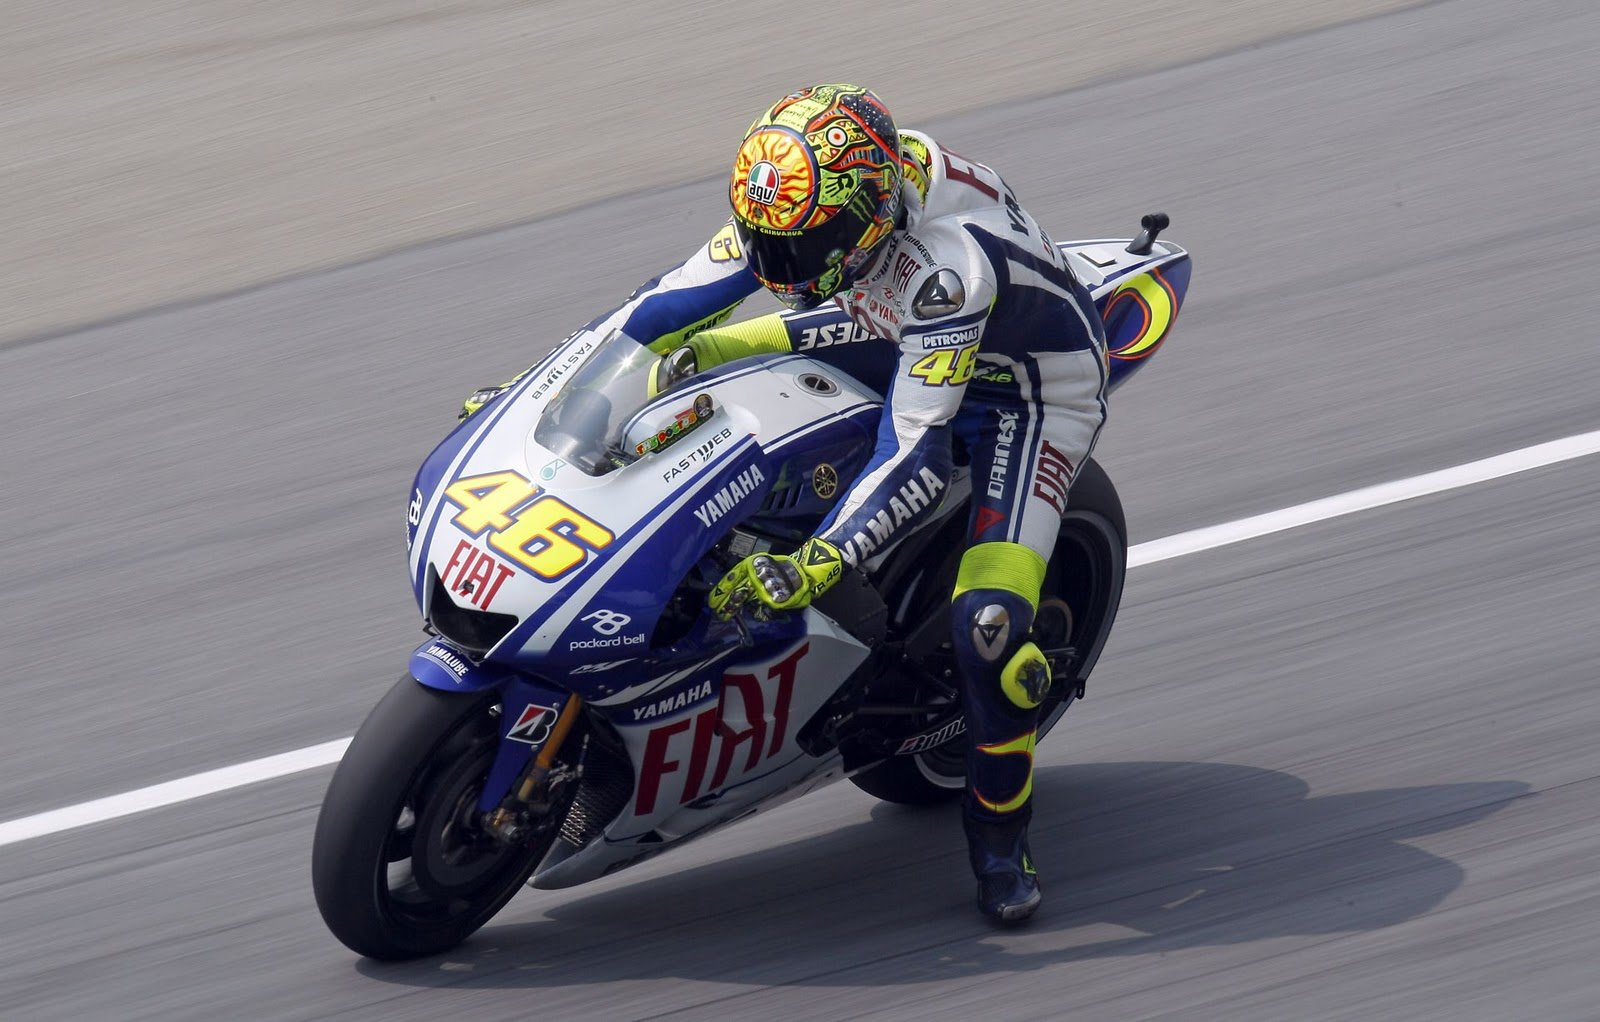 Valentino Rossi HD Wallpapers   Celebrities HD Wallpapers 1600x1022